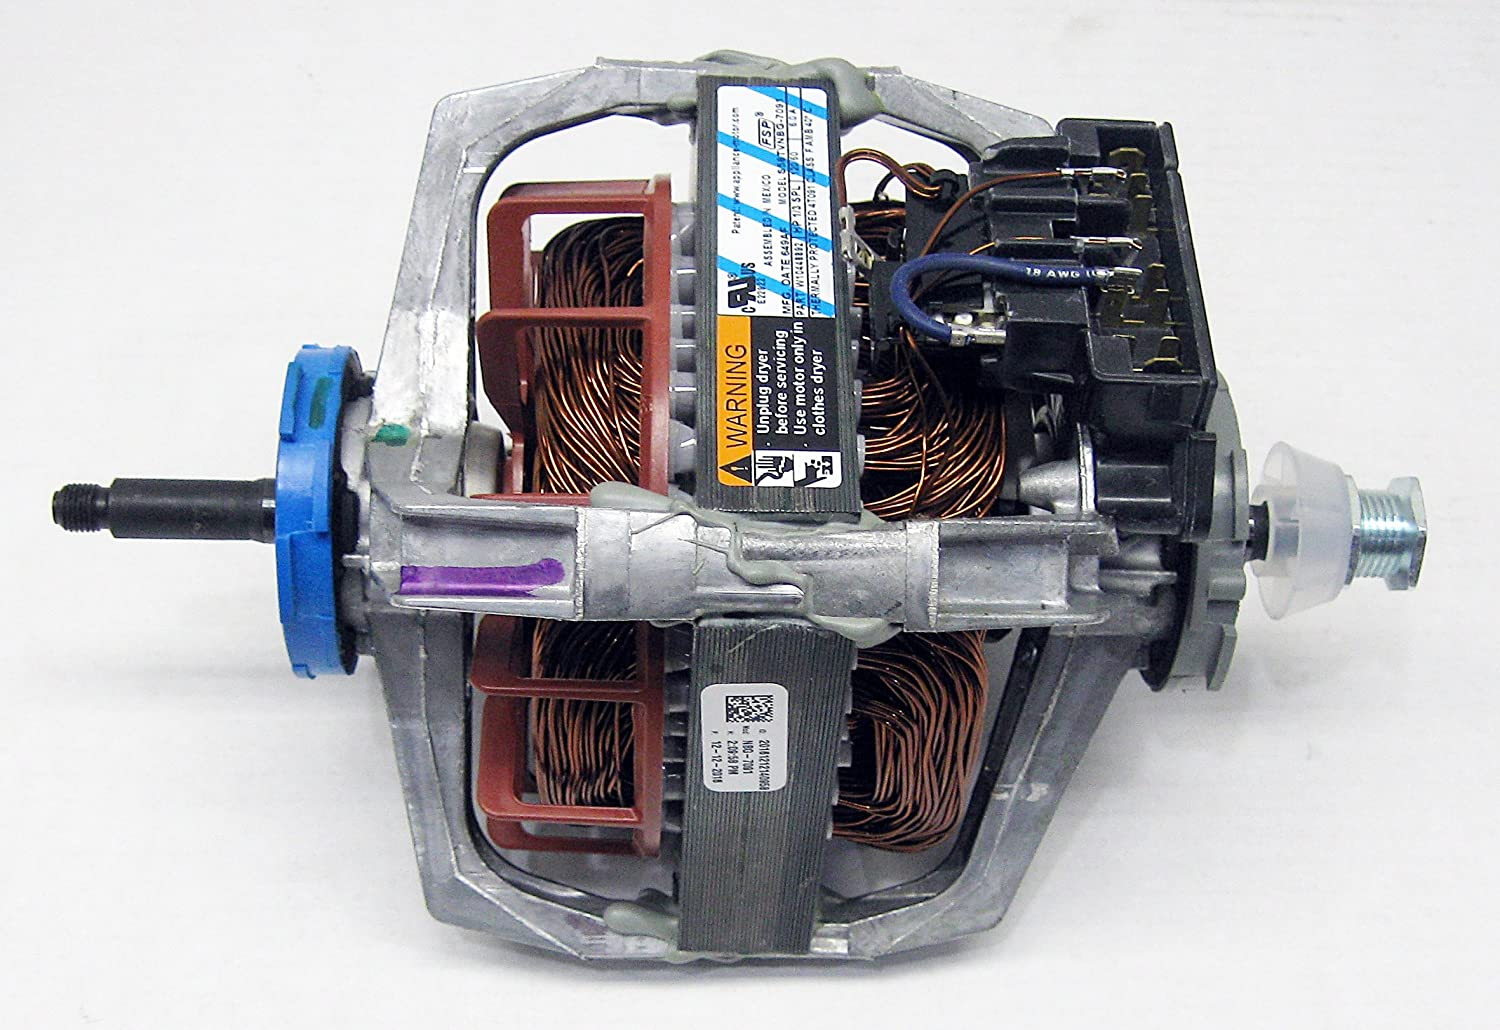 New Replacement Part Dryer Drive Motor For Whirlpool Sears Trash Compactor Wiring Diagram Kenmore 8066206 Home Improvement